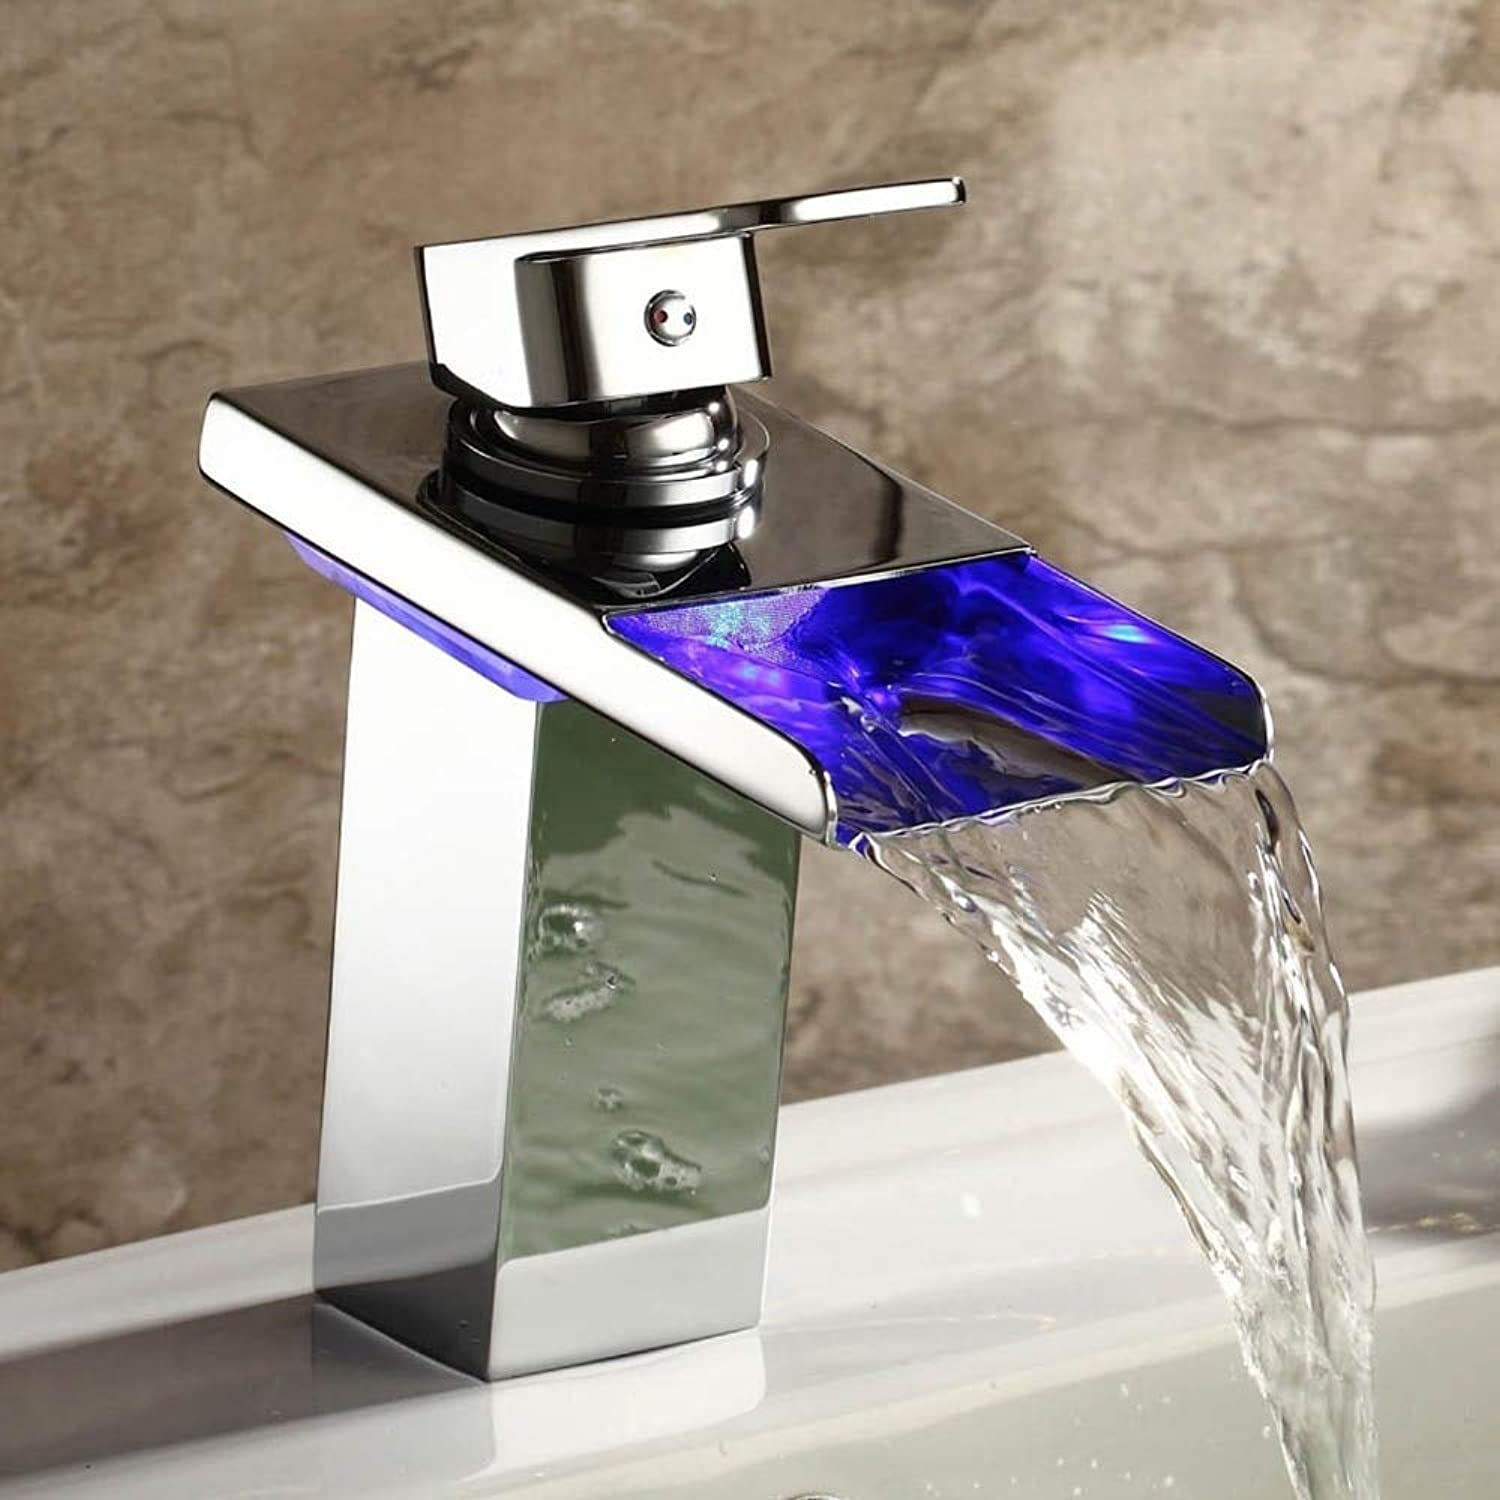 Brand Grifo Robinet krano Contemporary Solid Brass Single Handle Widespread Waterfall Bathroom Sink Led Faucets Chrome New-,Chrome